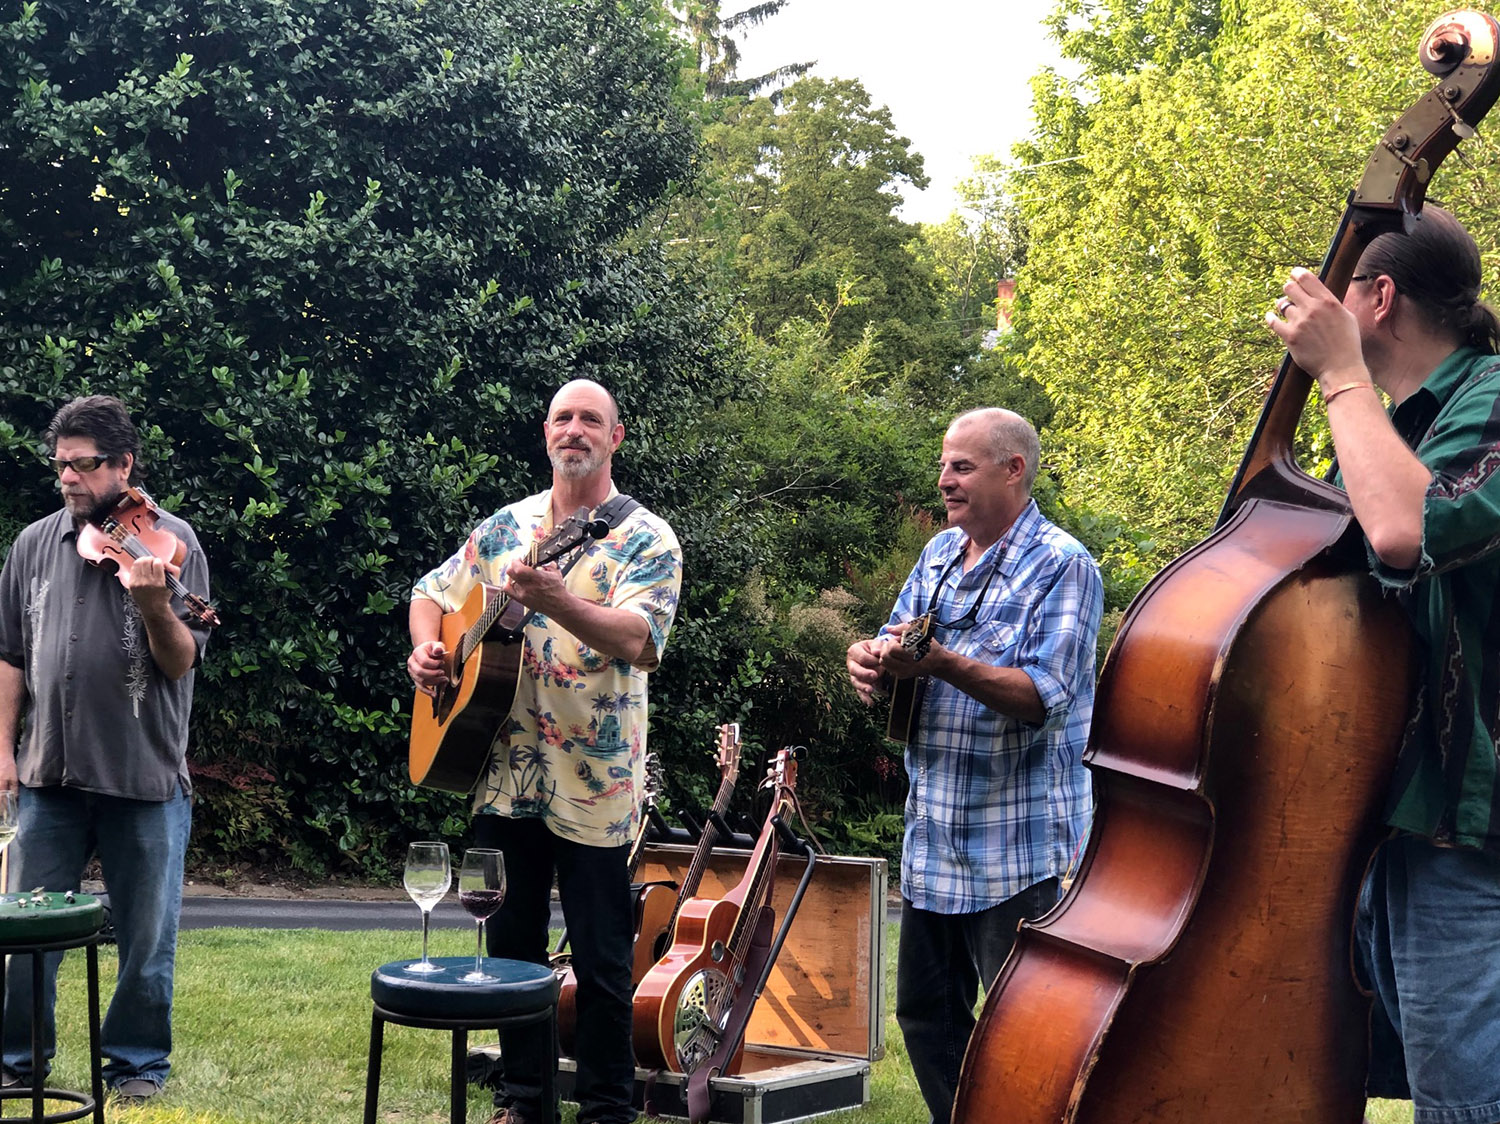 Mountain Music in Montford – No Happier Hour